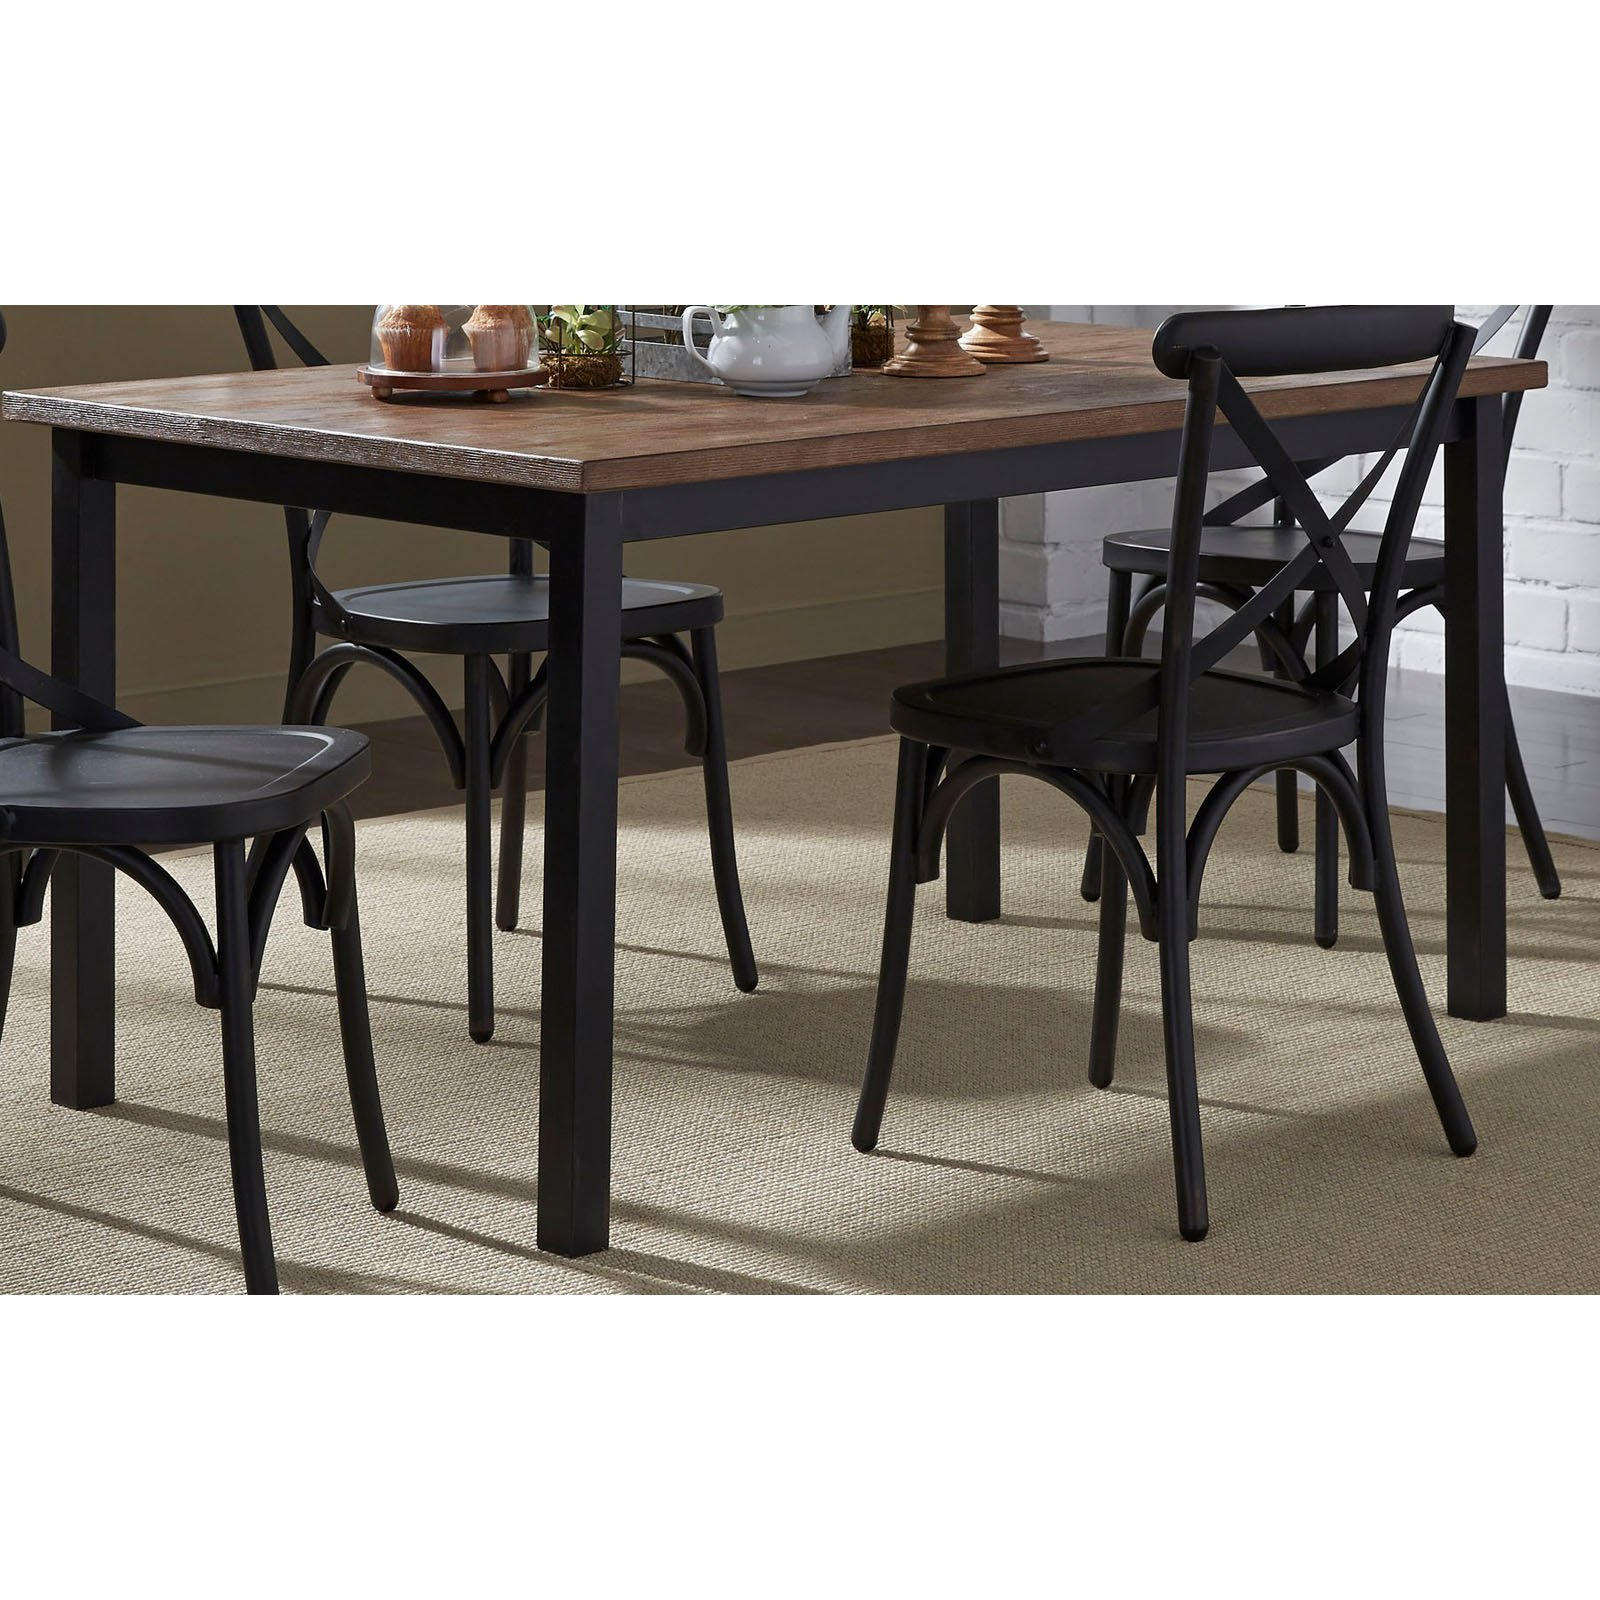 Liberty Furniture Industries Vintage Dining Series Rectangular Dining Table